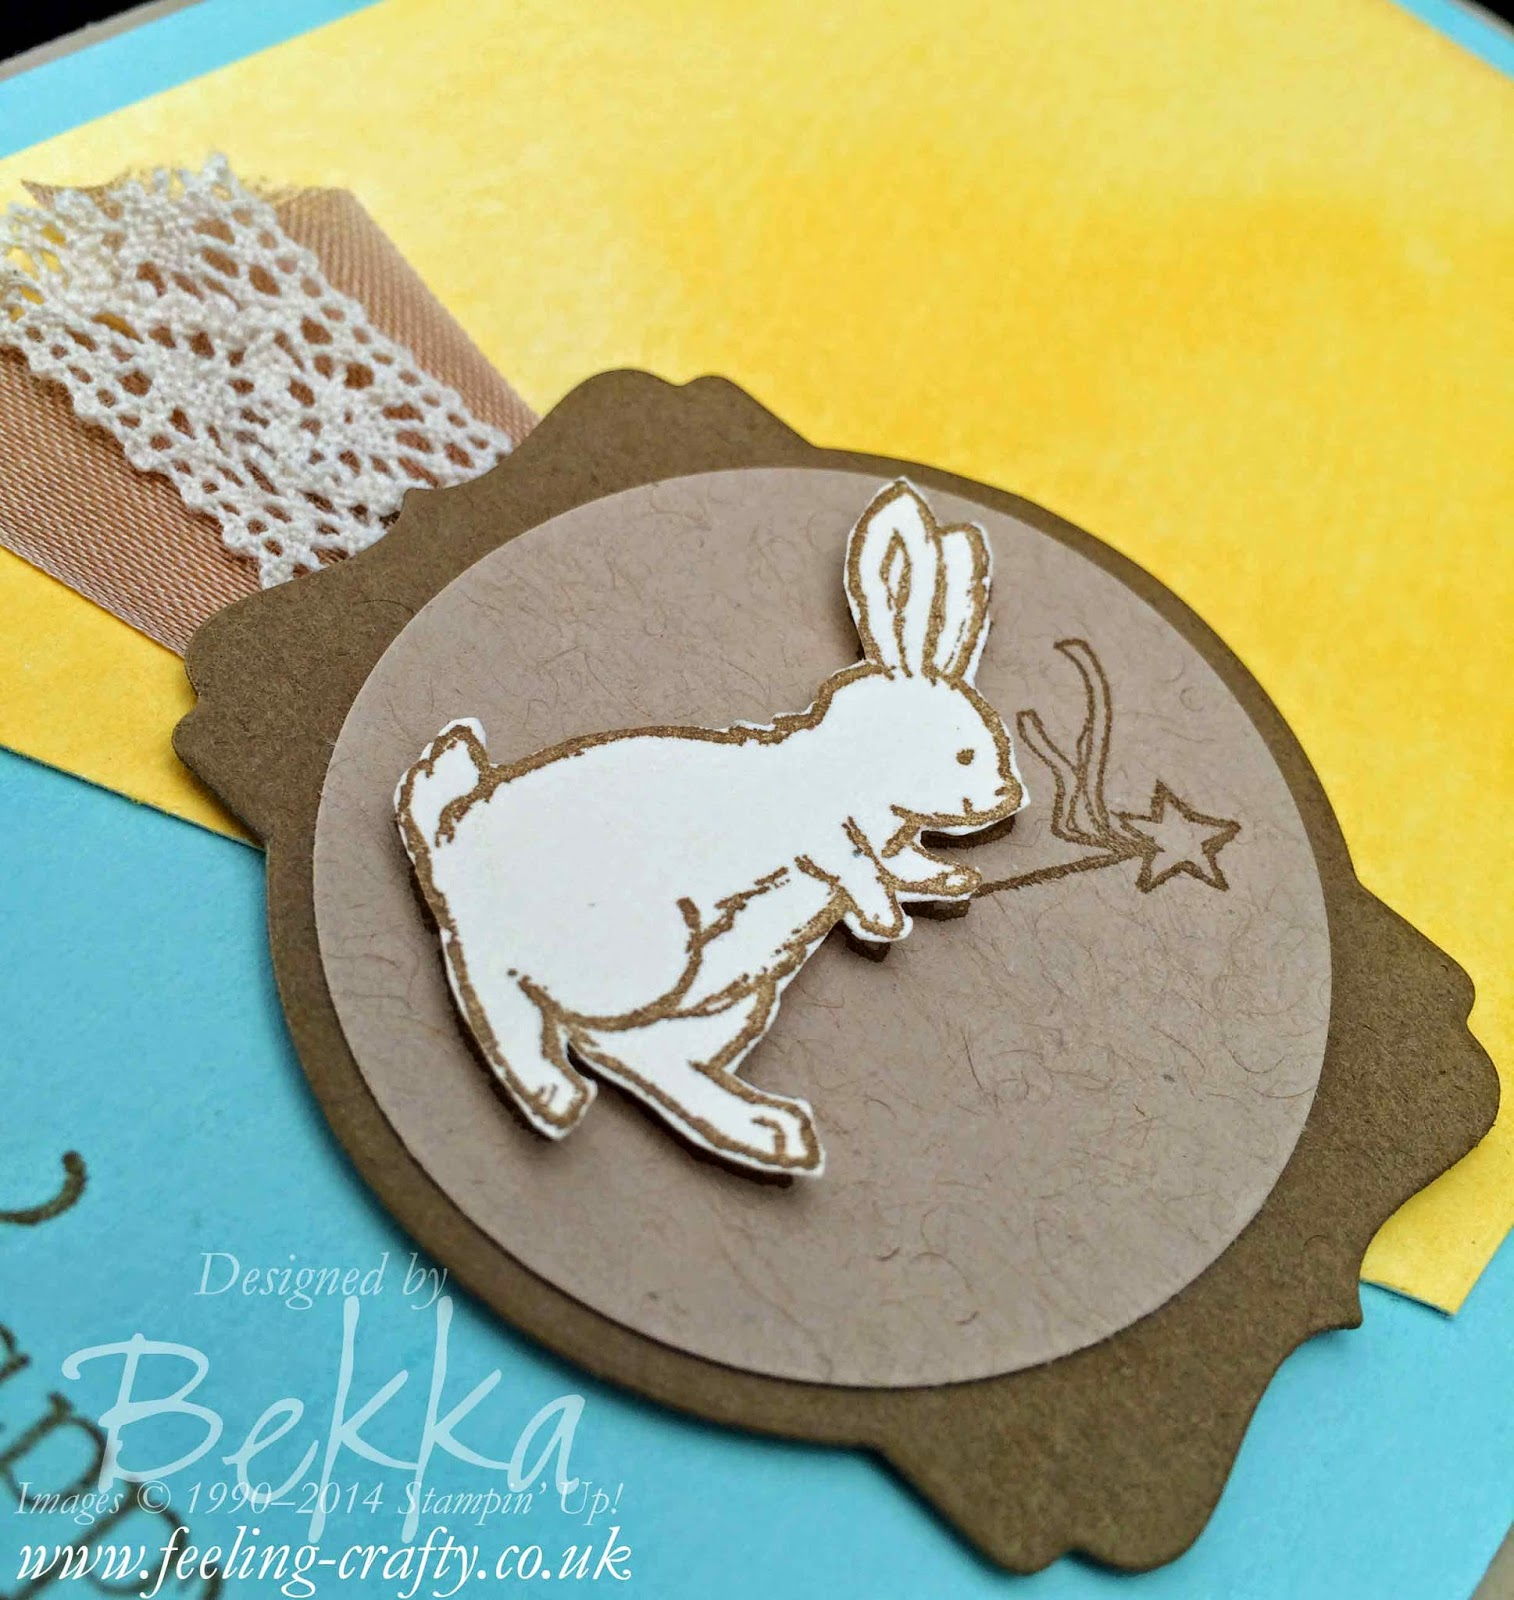 Storybook Friends Easter Card by Stampin' Up! UK Independent Demonstrator Bekka - check out her blog for lots of great ideas